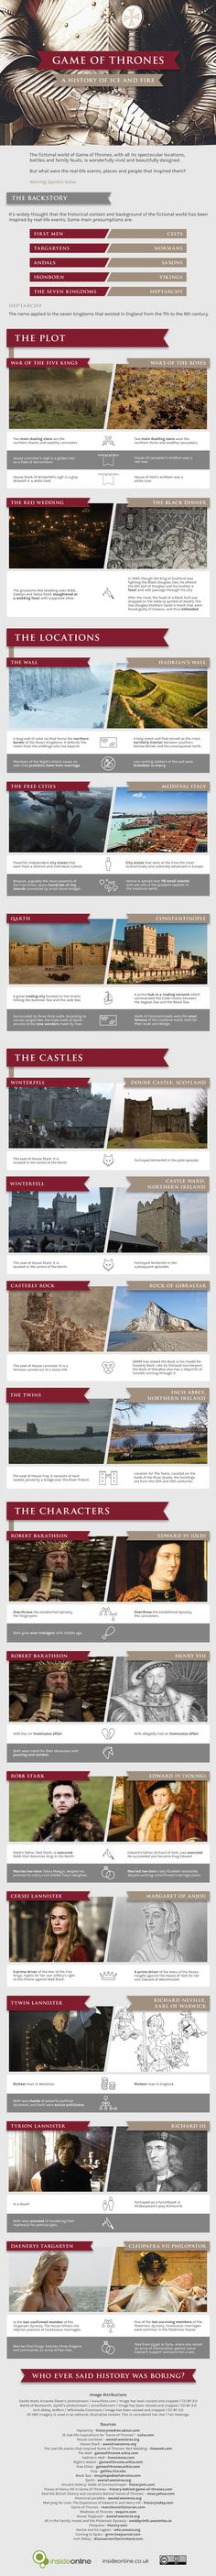 game of thrones history guide